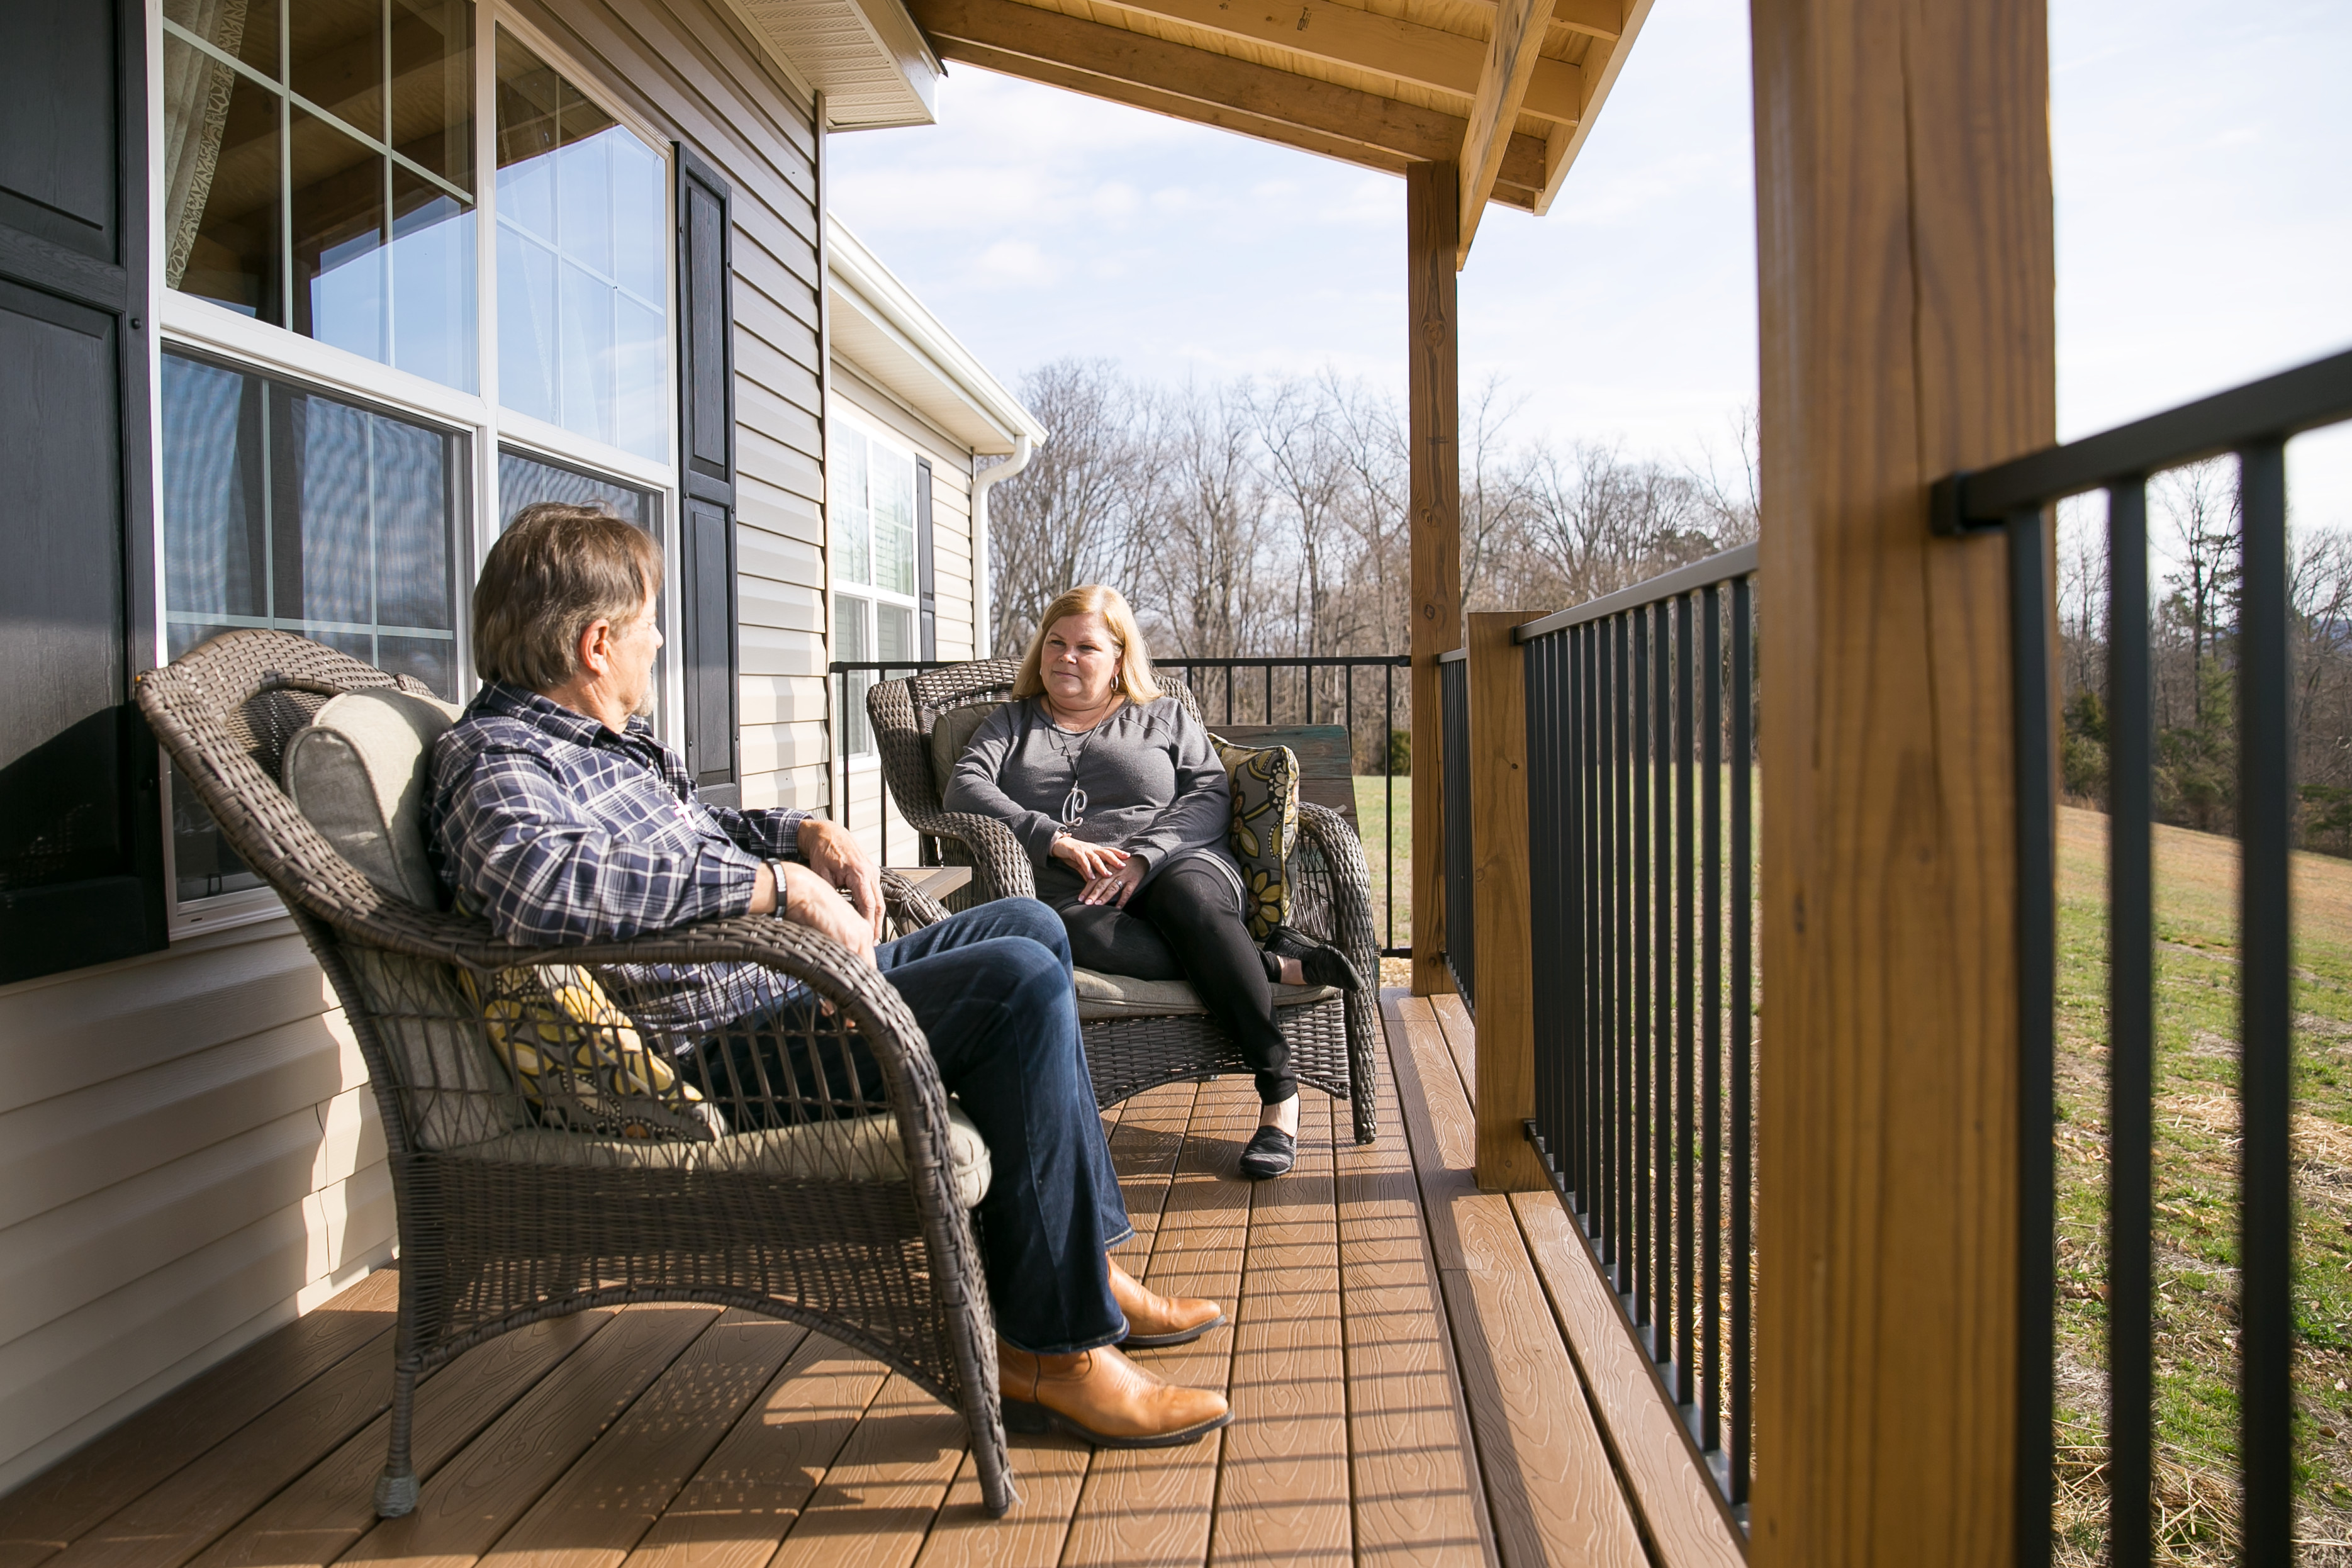 Couple sitting on their manufactured home porch together